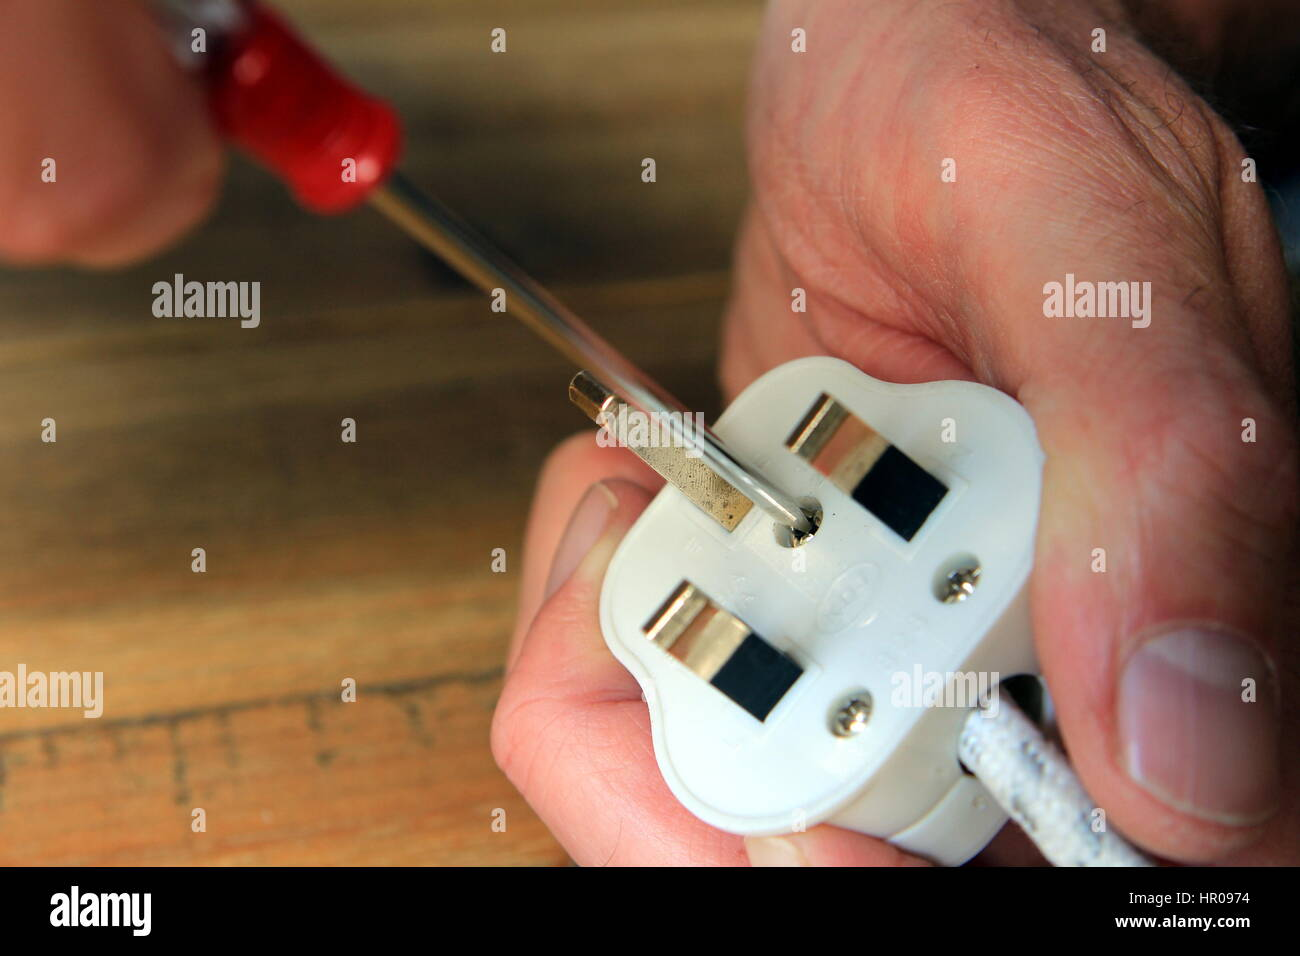 13 Amp Fuse Stock Photos Images Alamy Mcb Circuit Breakers To Replace Rewire Fuses Mini Trip Plug In Opening A Uk Domestic Electric Change The Image